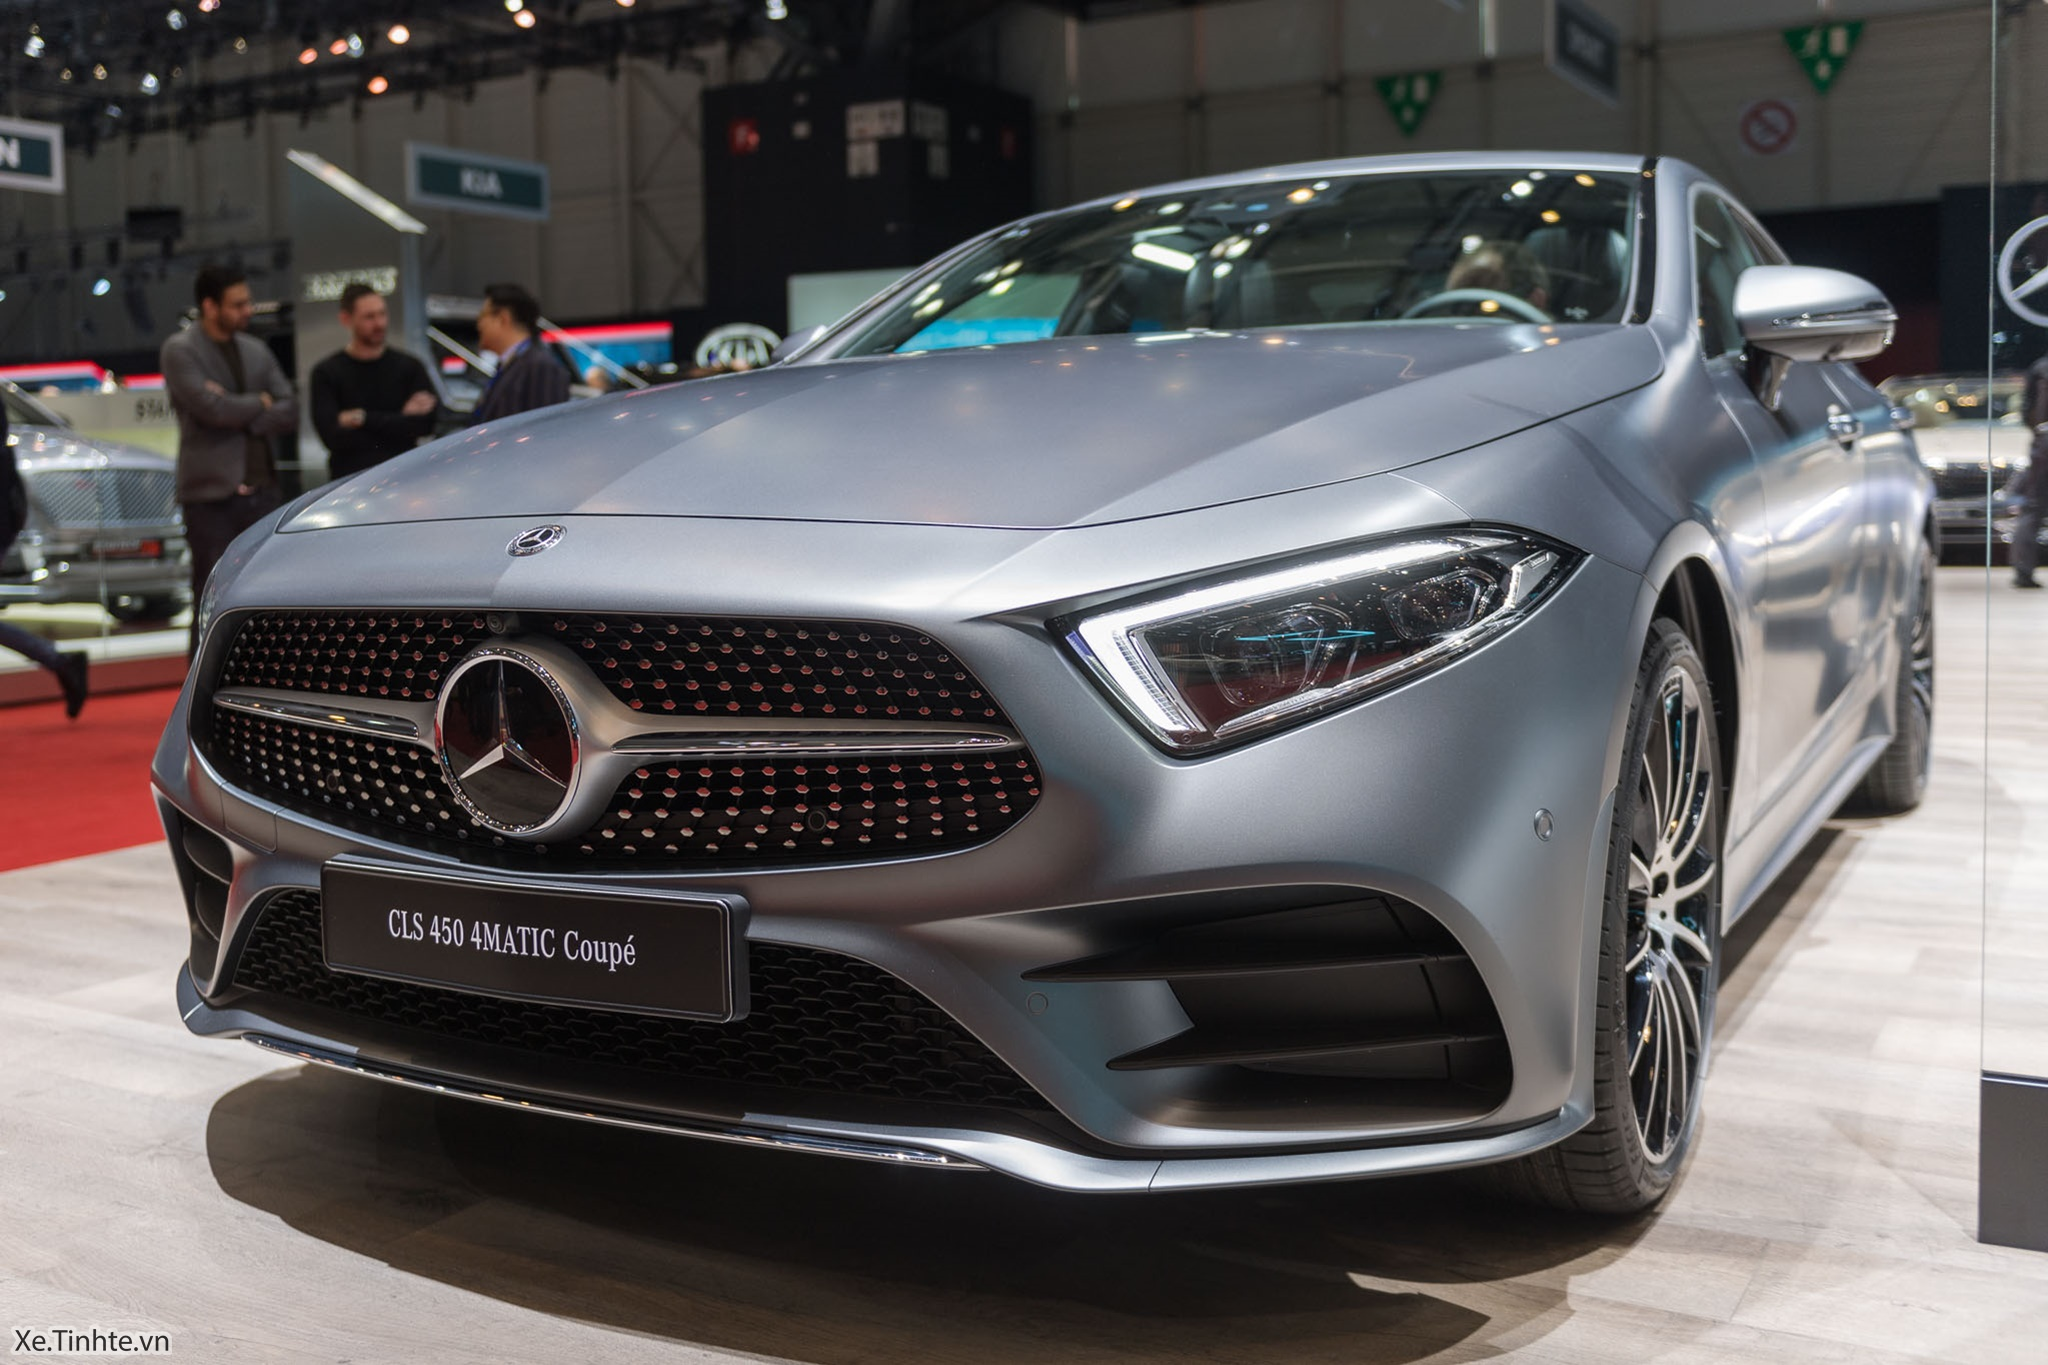 Mercedes_CLS_450_4MATIC_Coupe_Xe_Tinhte-005.jpg